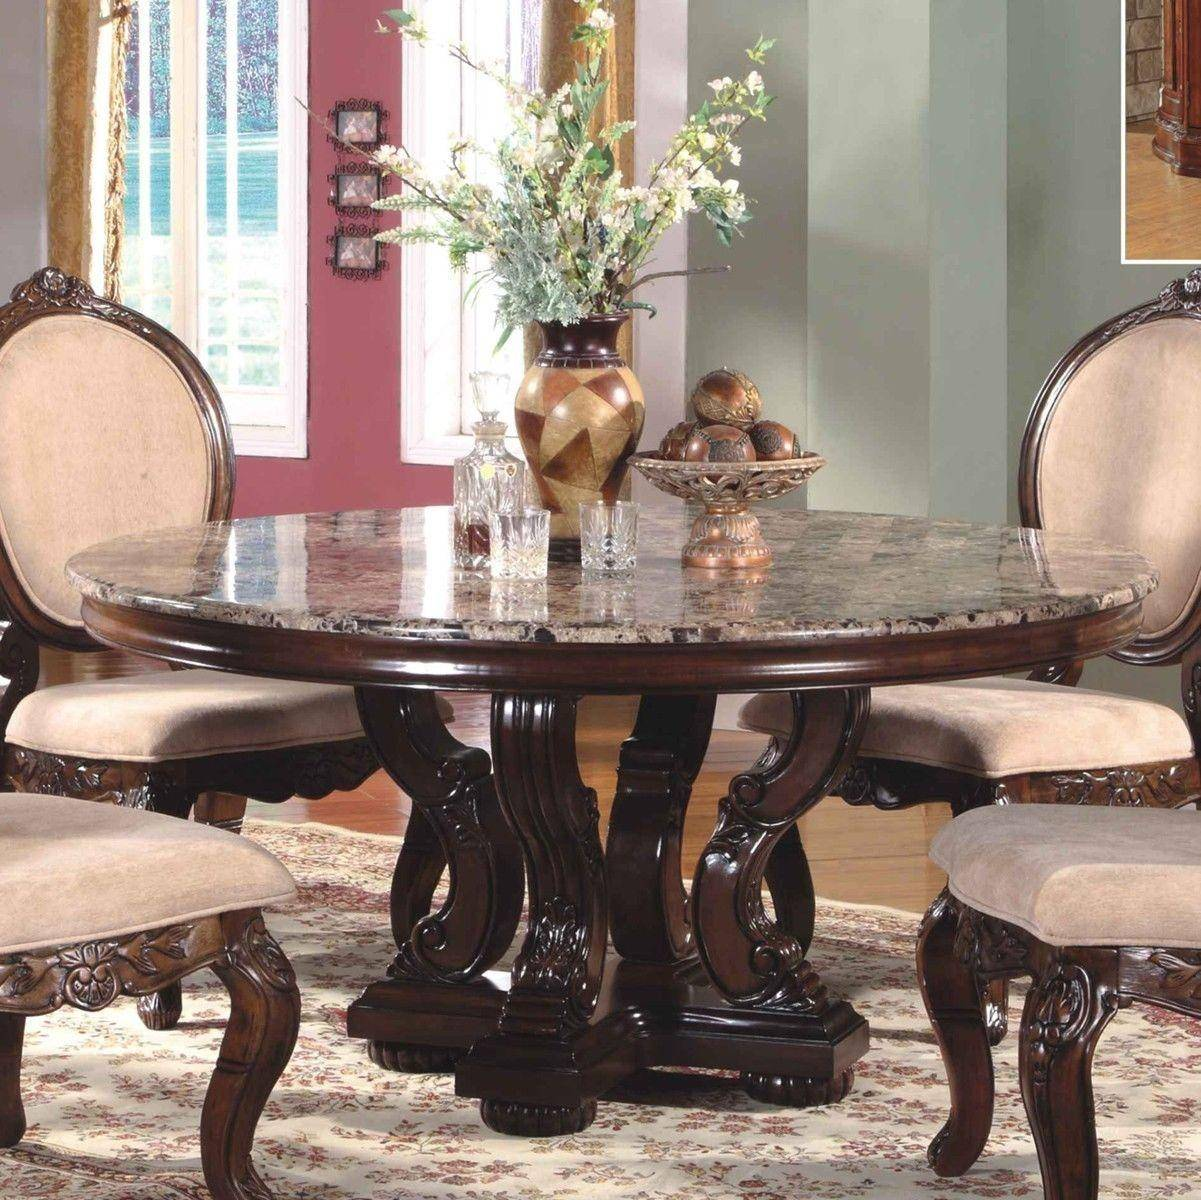 Mcferran RD0017-6060 Traditional Light Brown Marble Top Dining Room Set 5Pcs